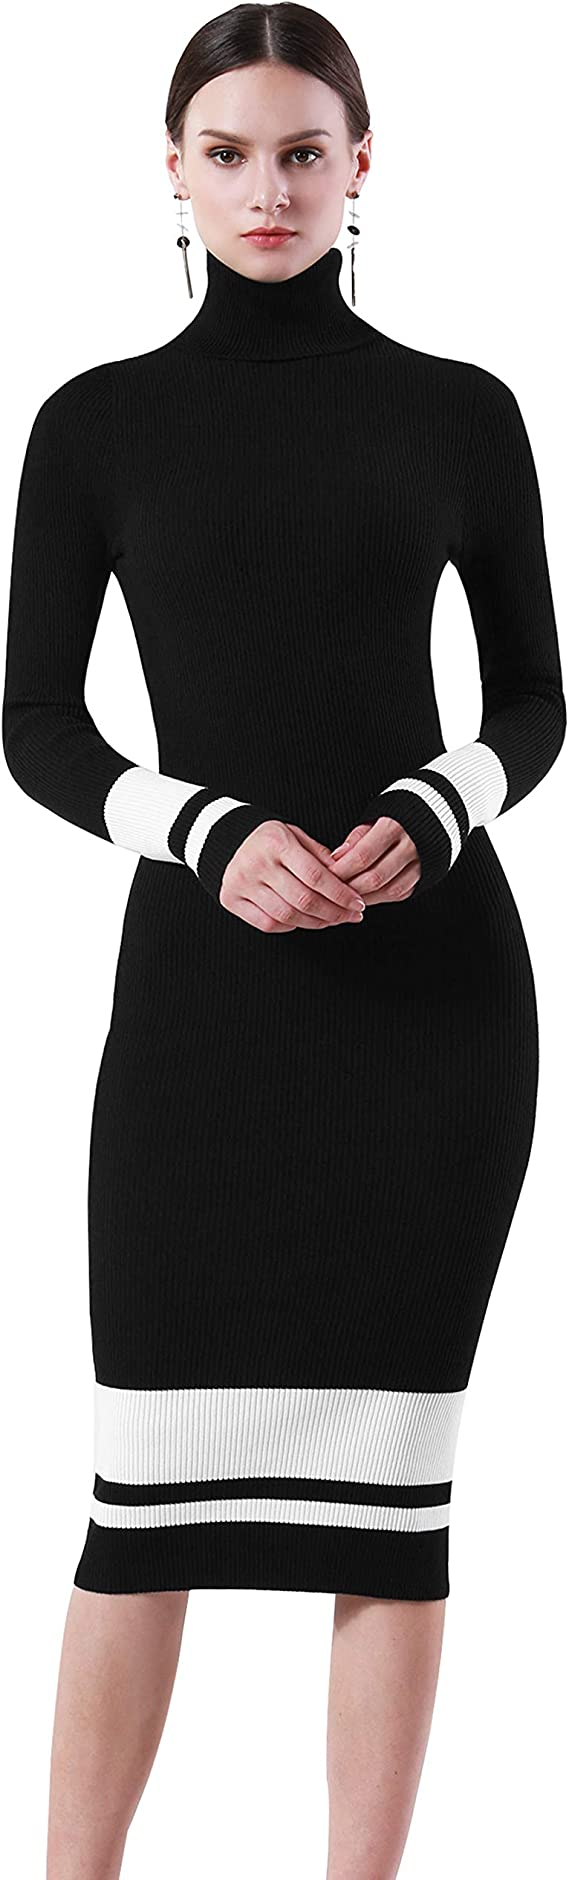 PrettyGuide Women Sweater Dress Turtleneck Ribbed Knit Slim Fit Long Sleeve Midi Dress